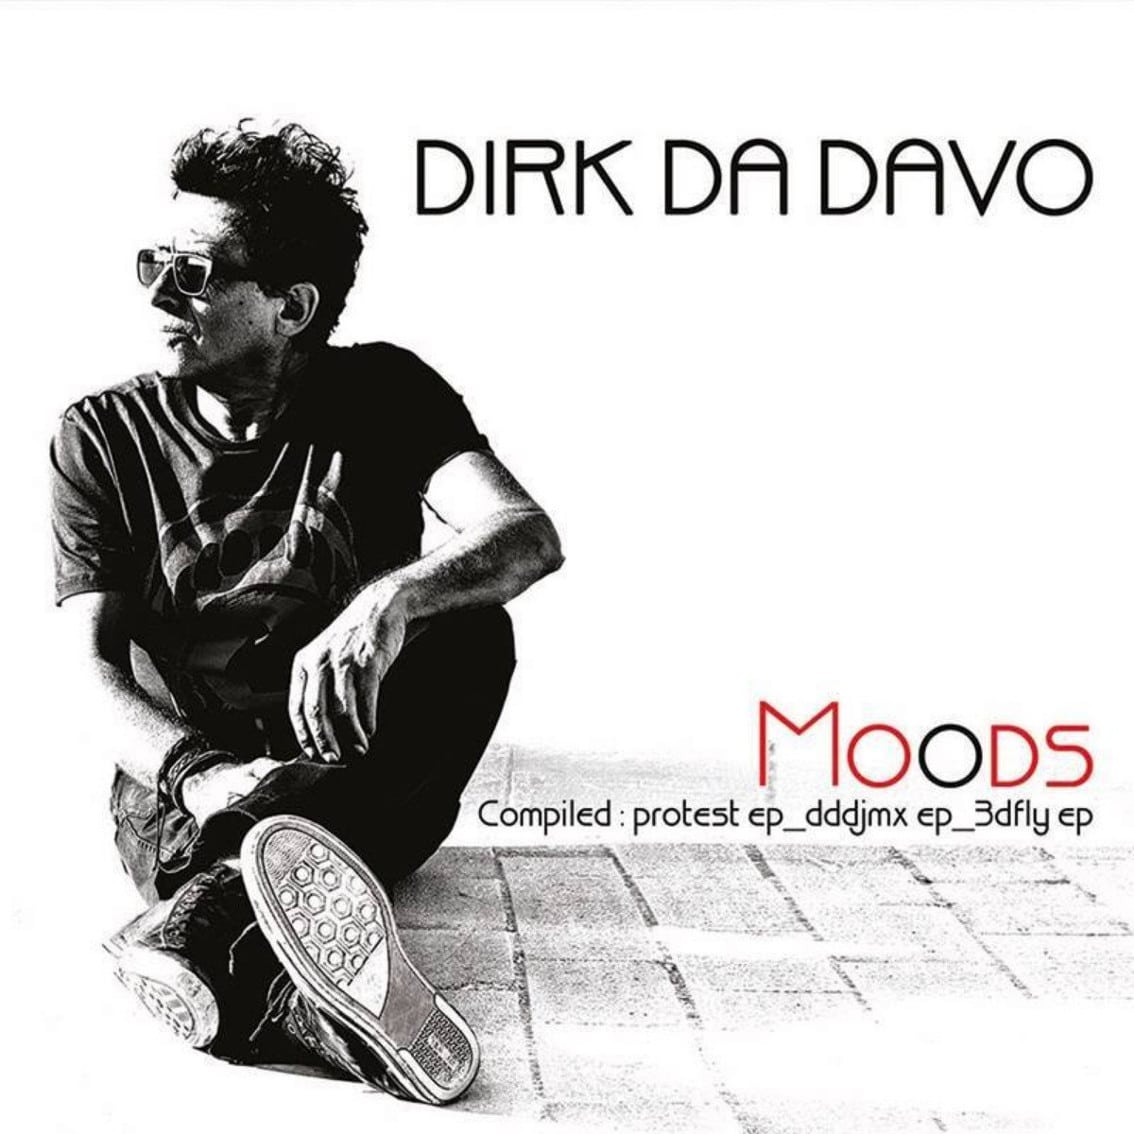 Dirk Da Davo back with 'MOODS' album - limited to 200 copies!